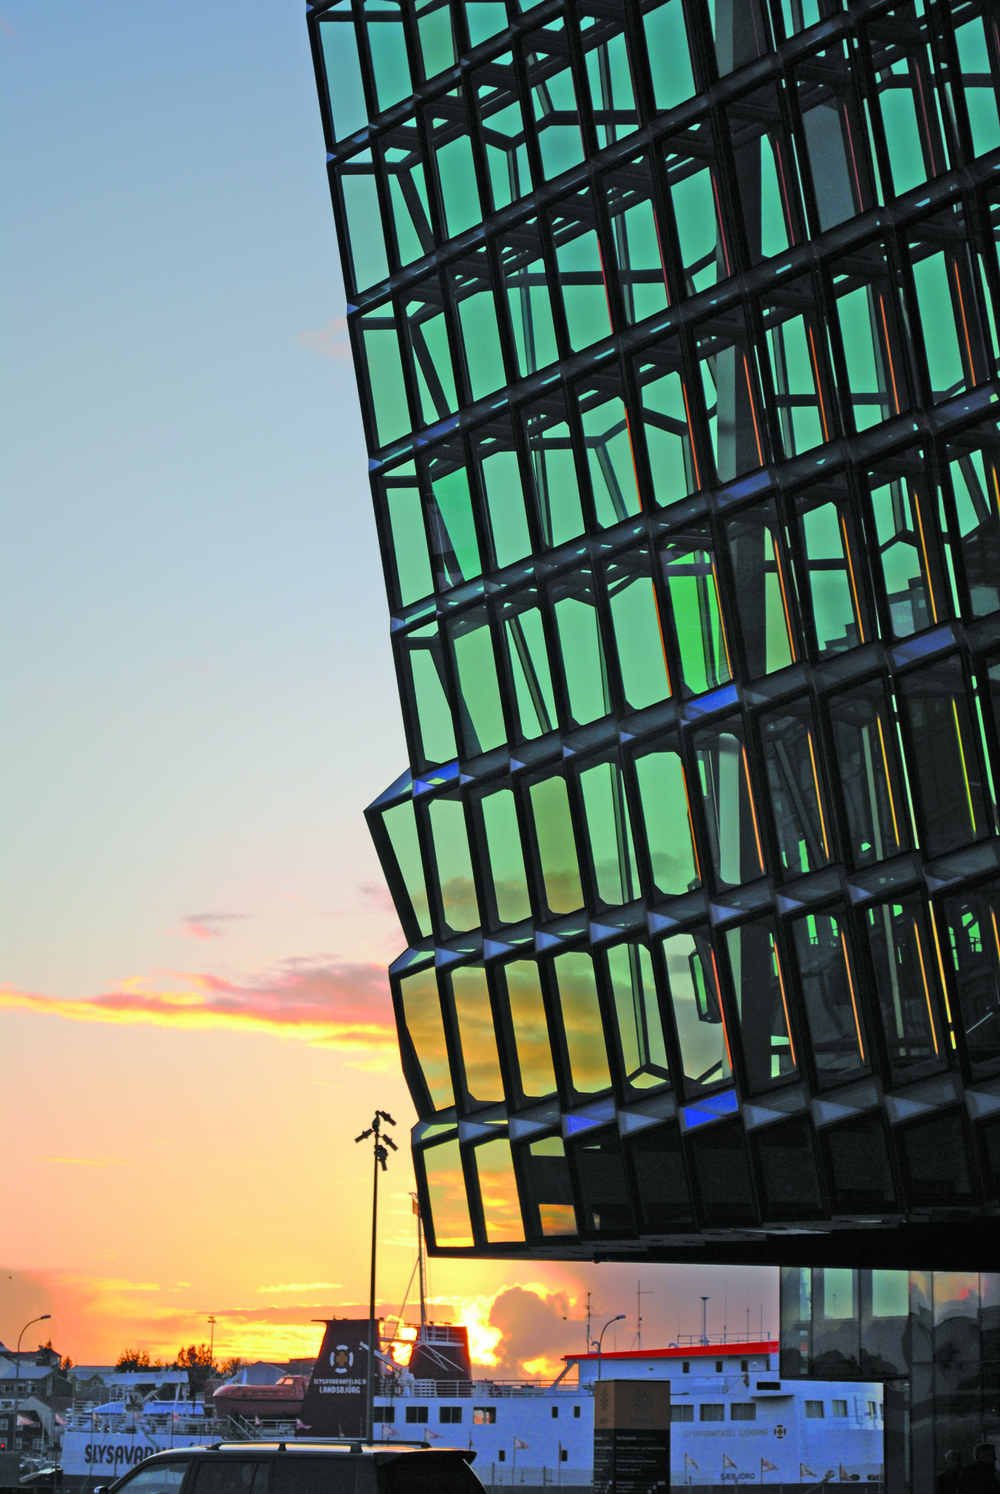 Harpa Concert hall on the Reykjavik waterfront